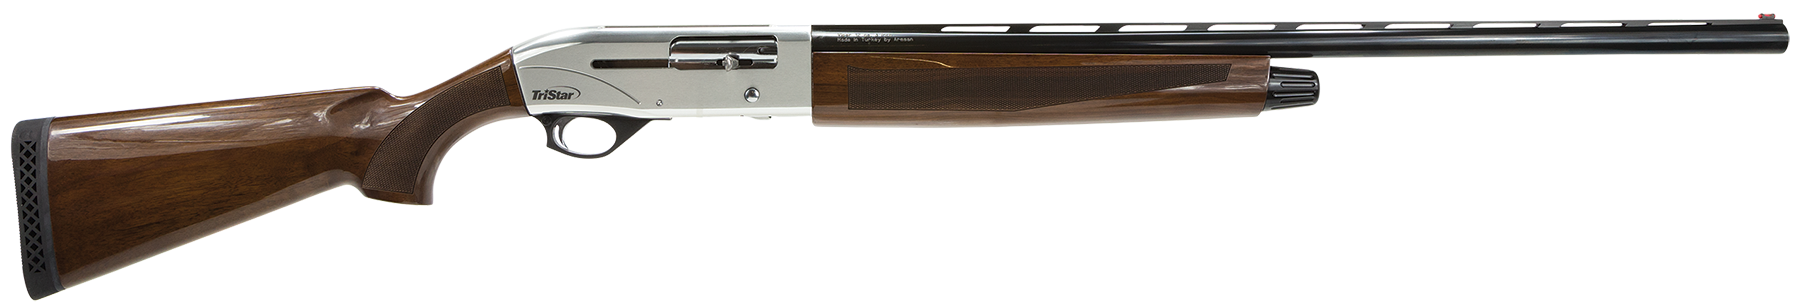 TriStar Viper G2 Silver Semi-Auto Shotgun 3'' 20 Gauge 26'' Silver Steel - Turkish Walnut